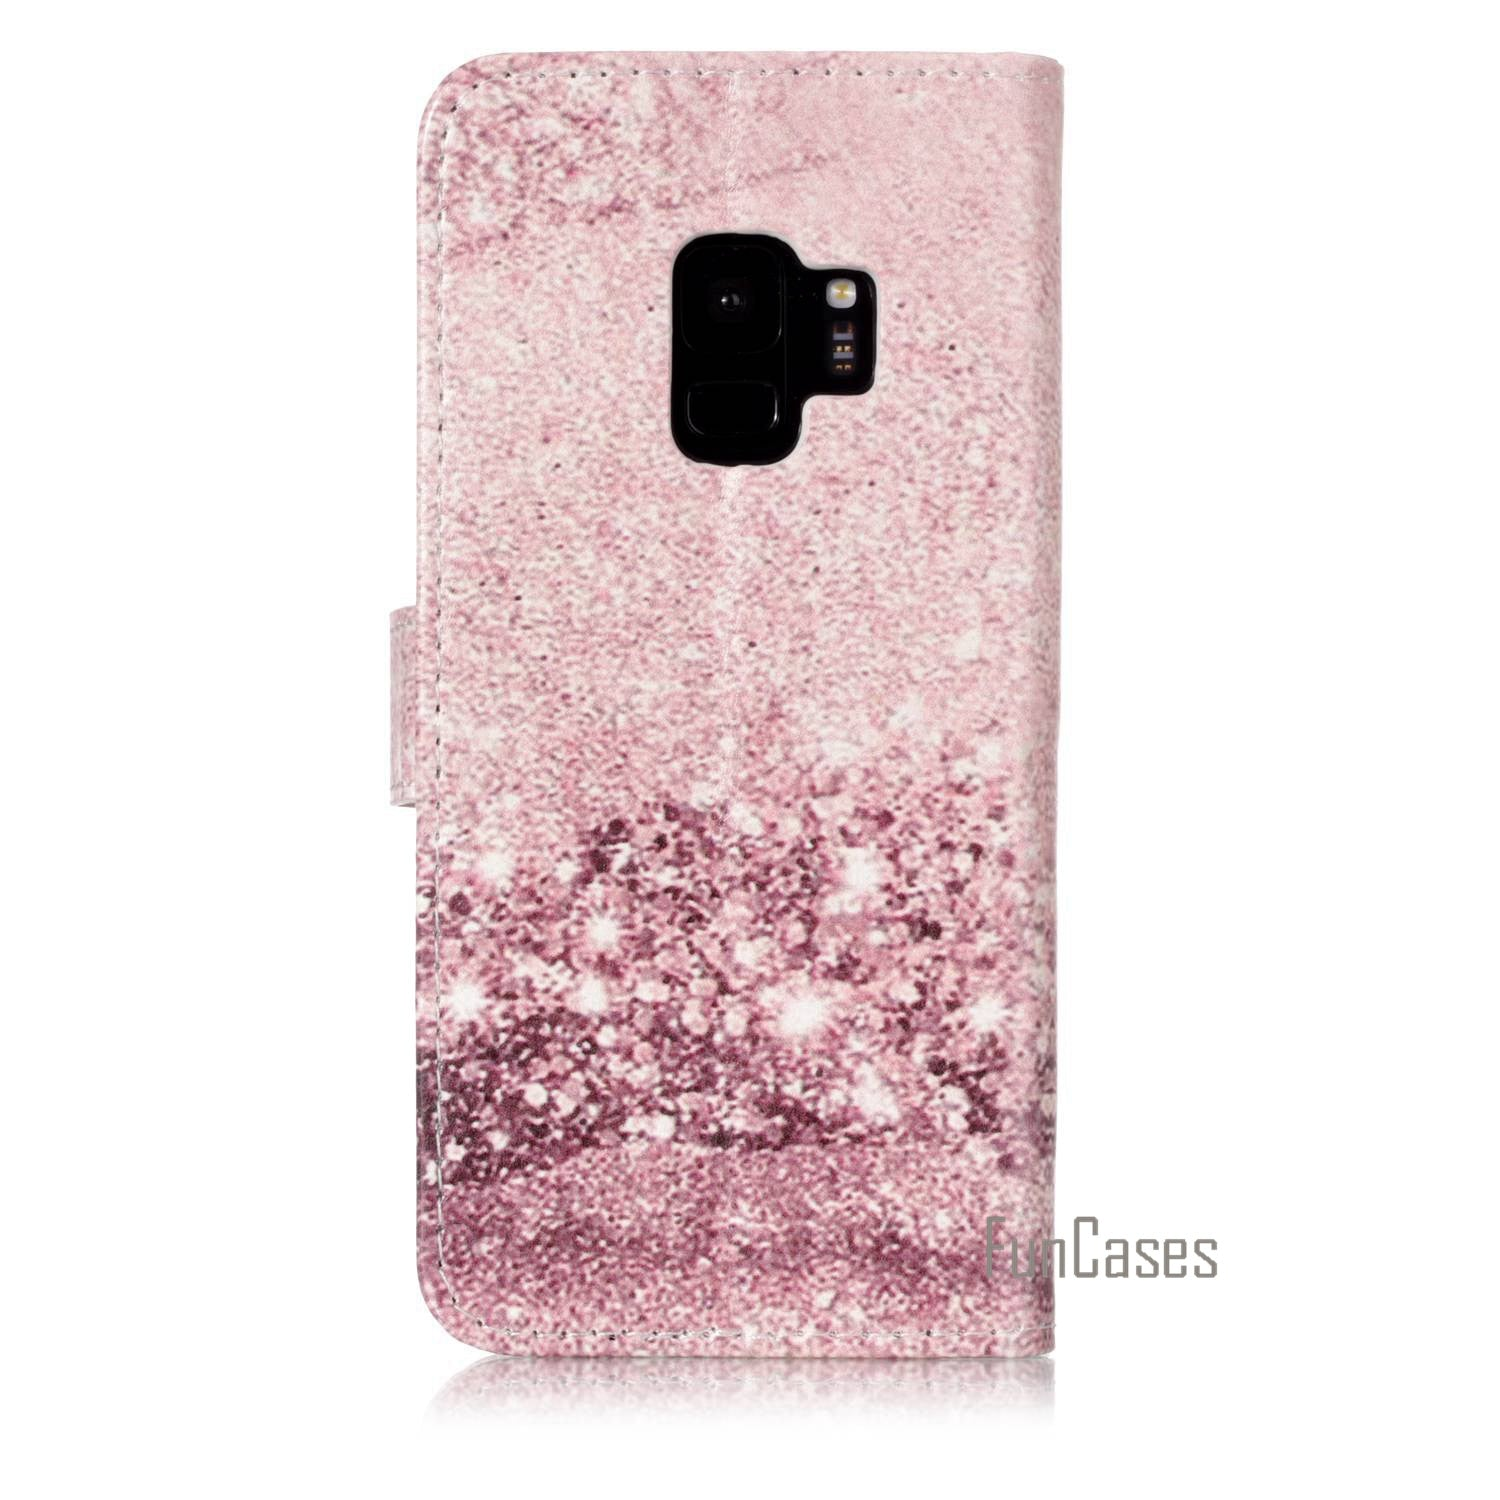 The New PU Phone Case For Fundas Samsung Galaxy S9 Marble Pattern Case For Coque Samsung Galaxy S9 Telephone Case